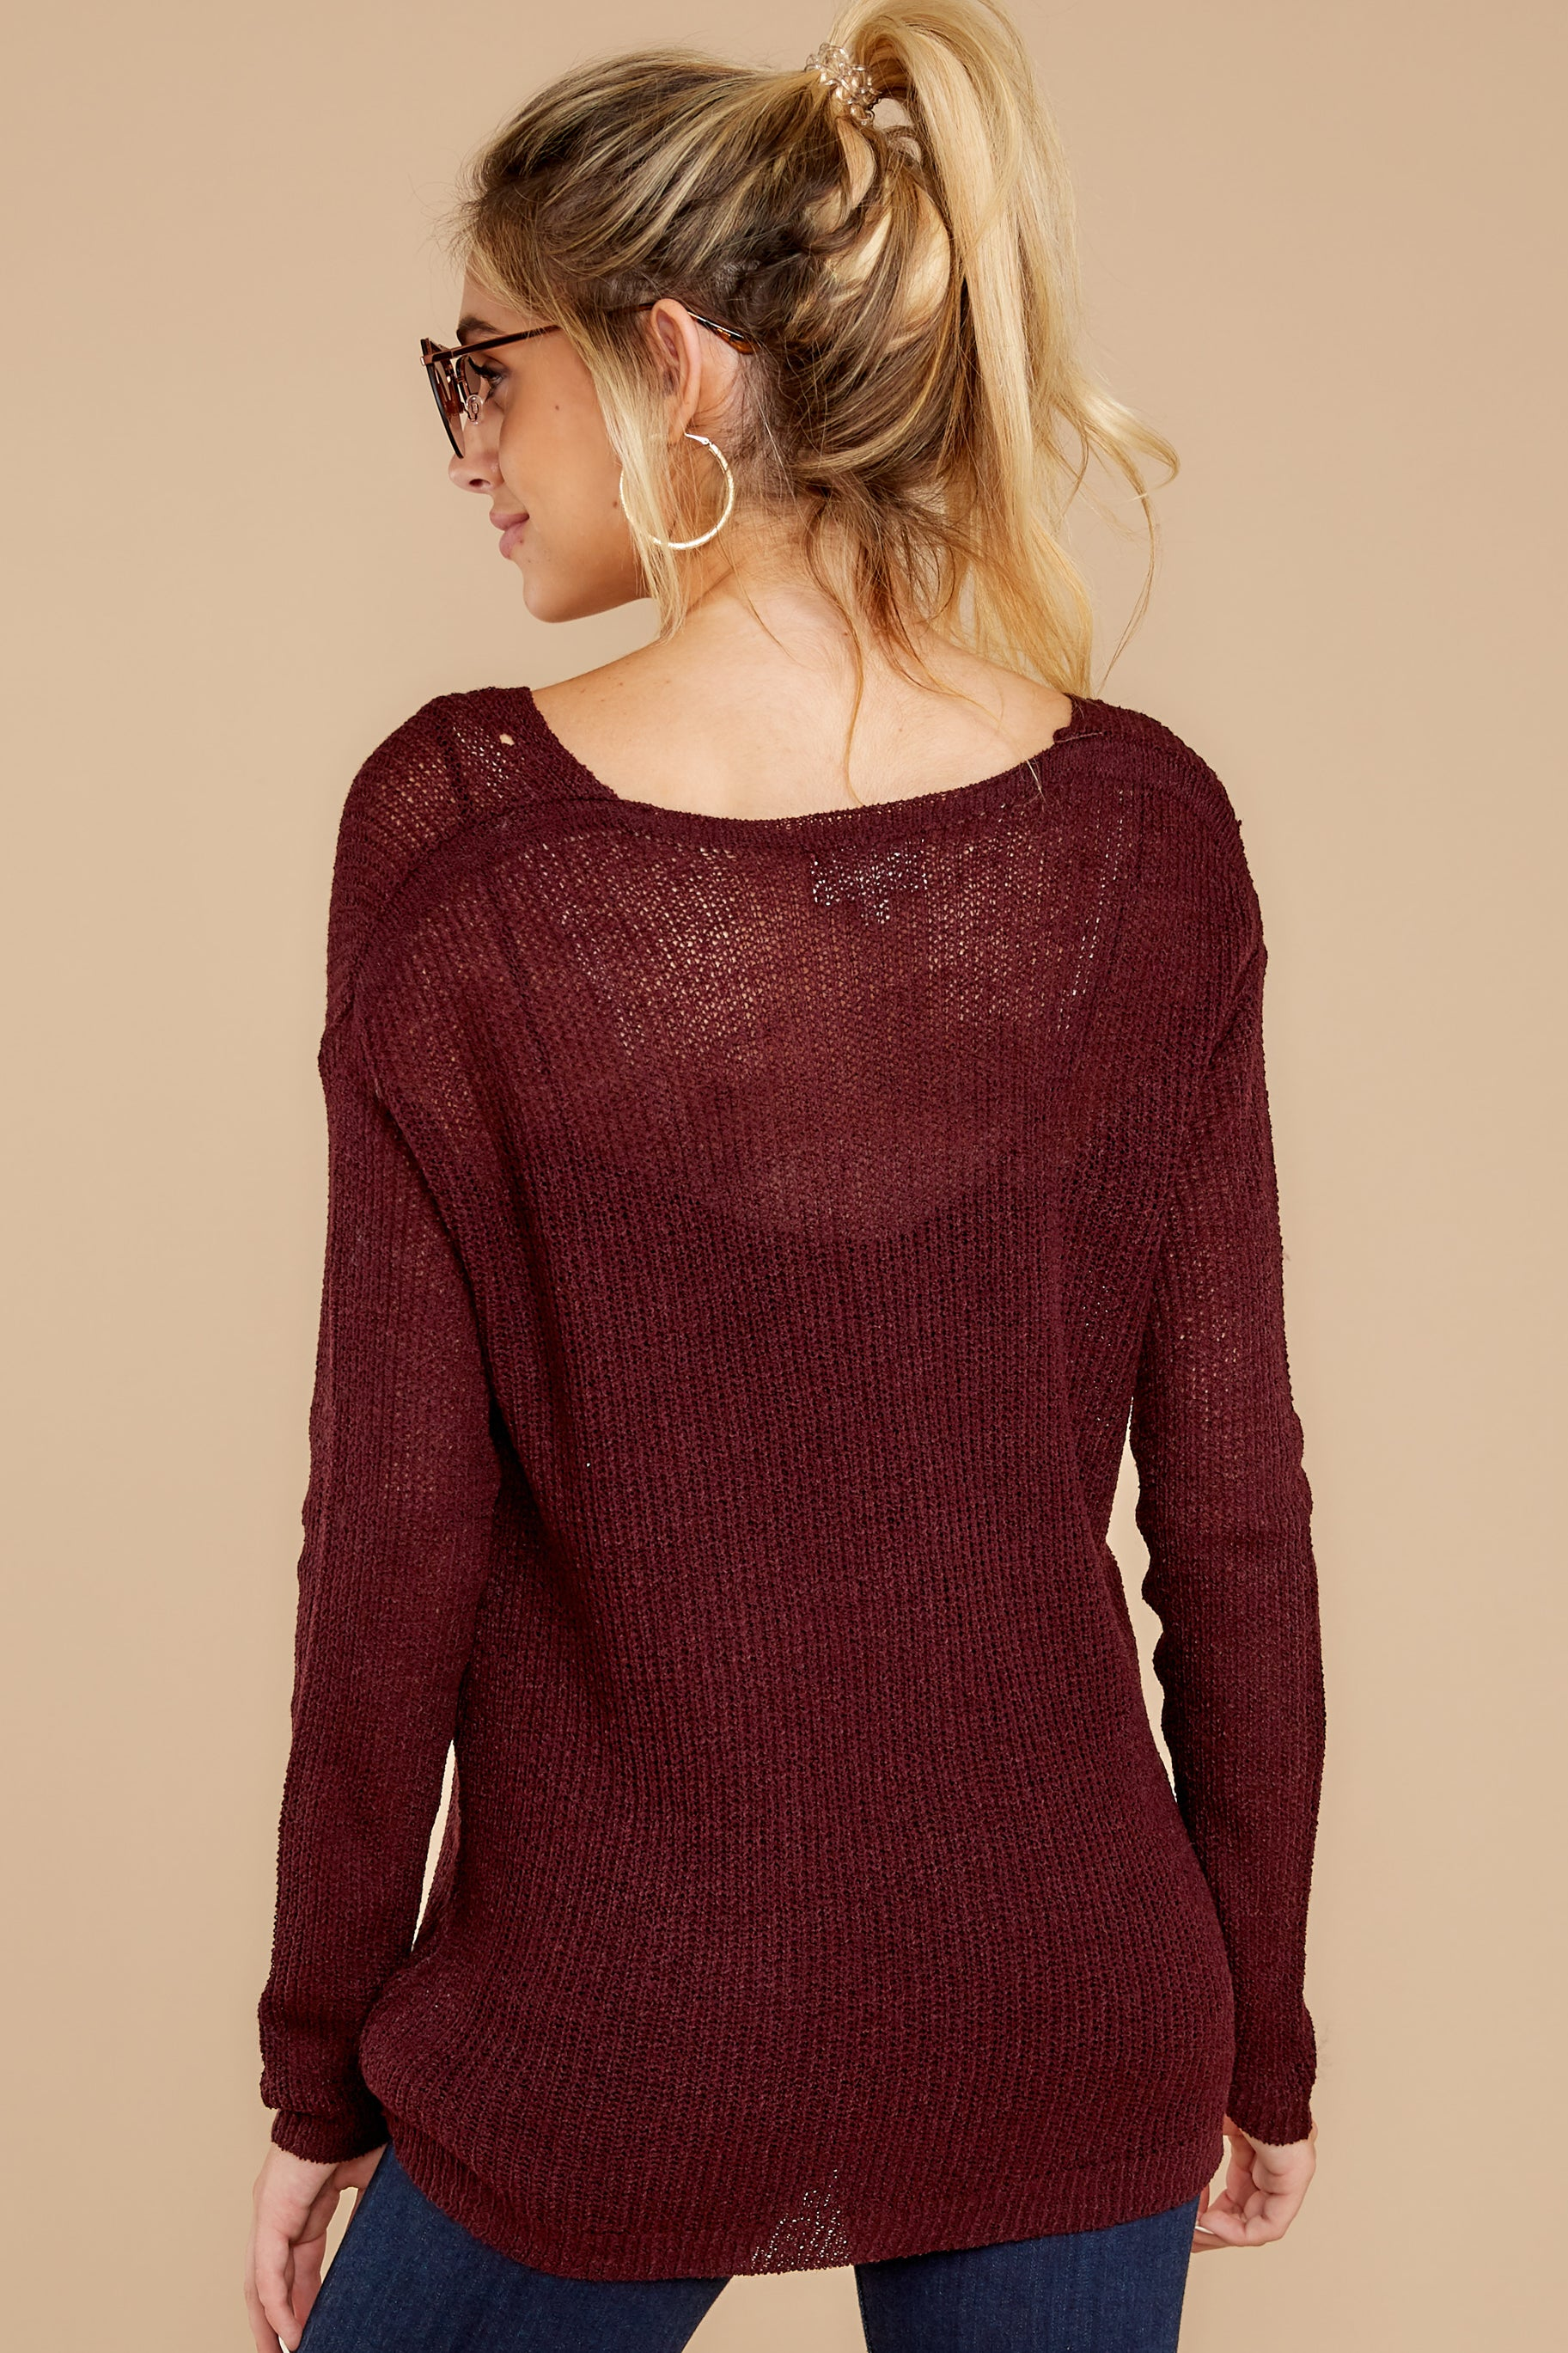 8 Through The Window Dark Wine Sweater at reddress.com